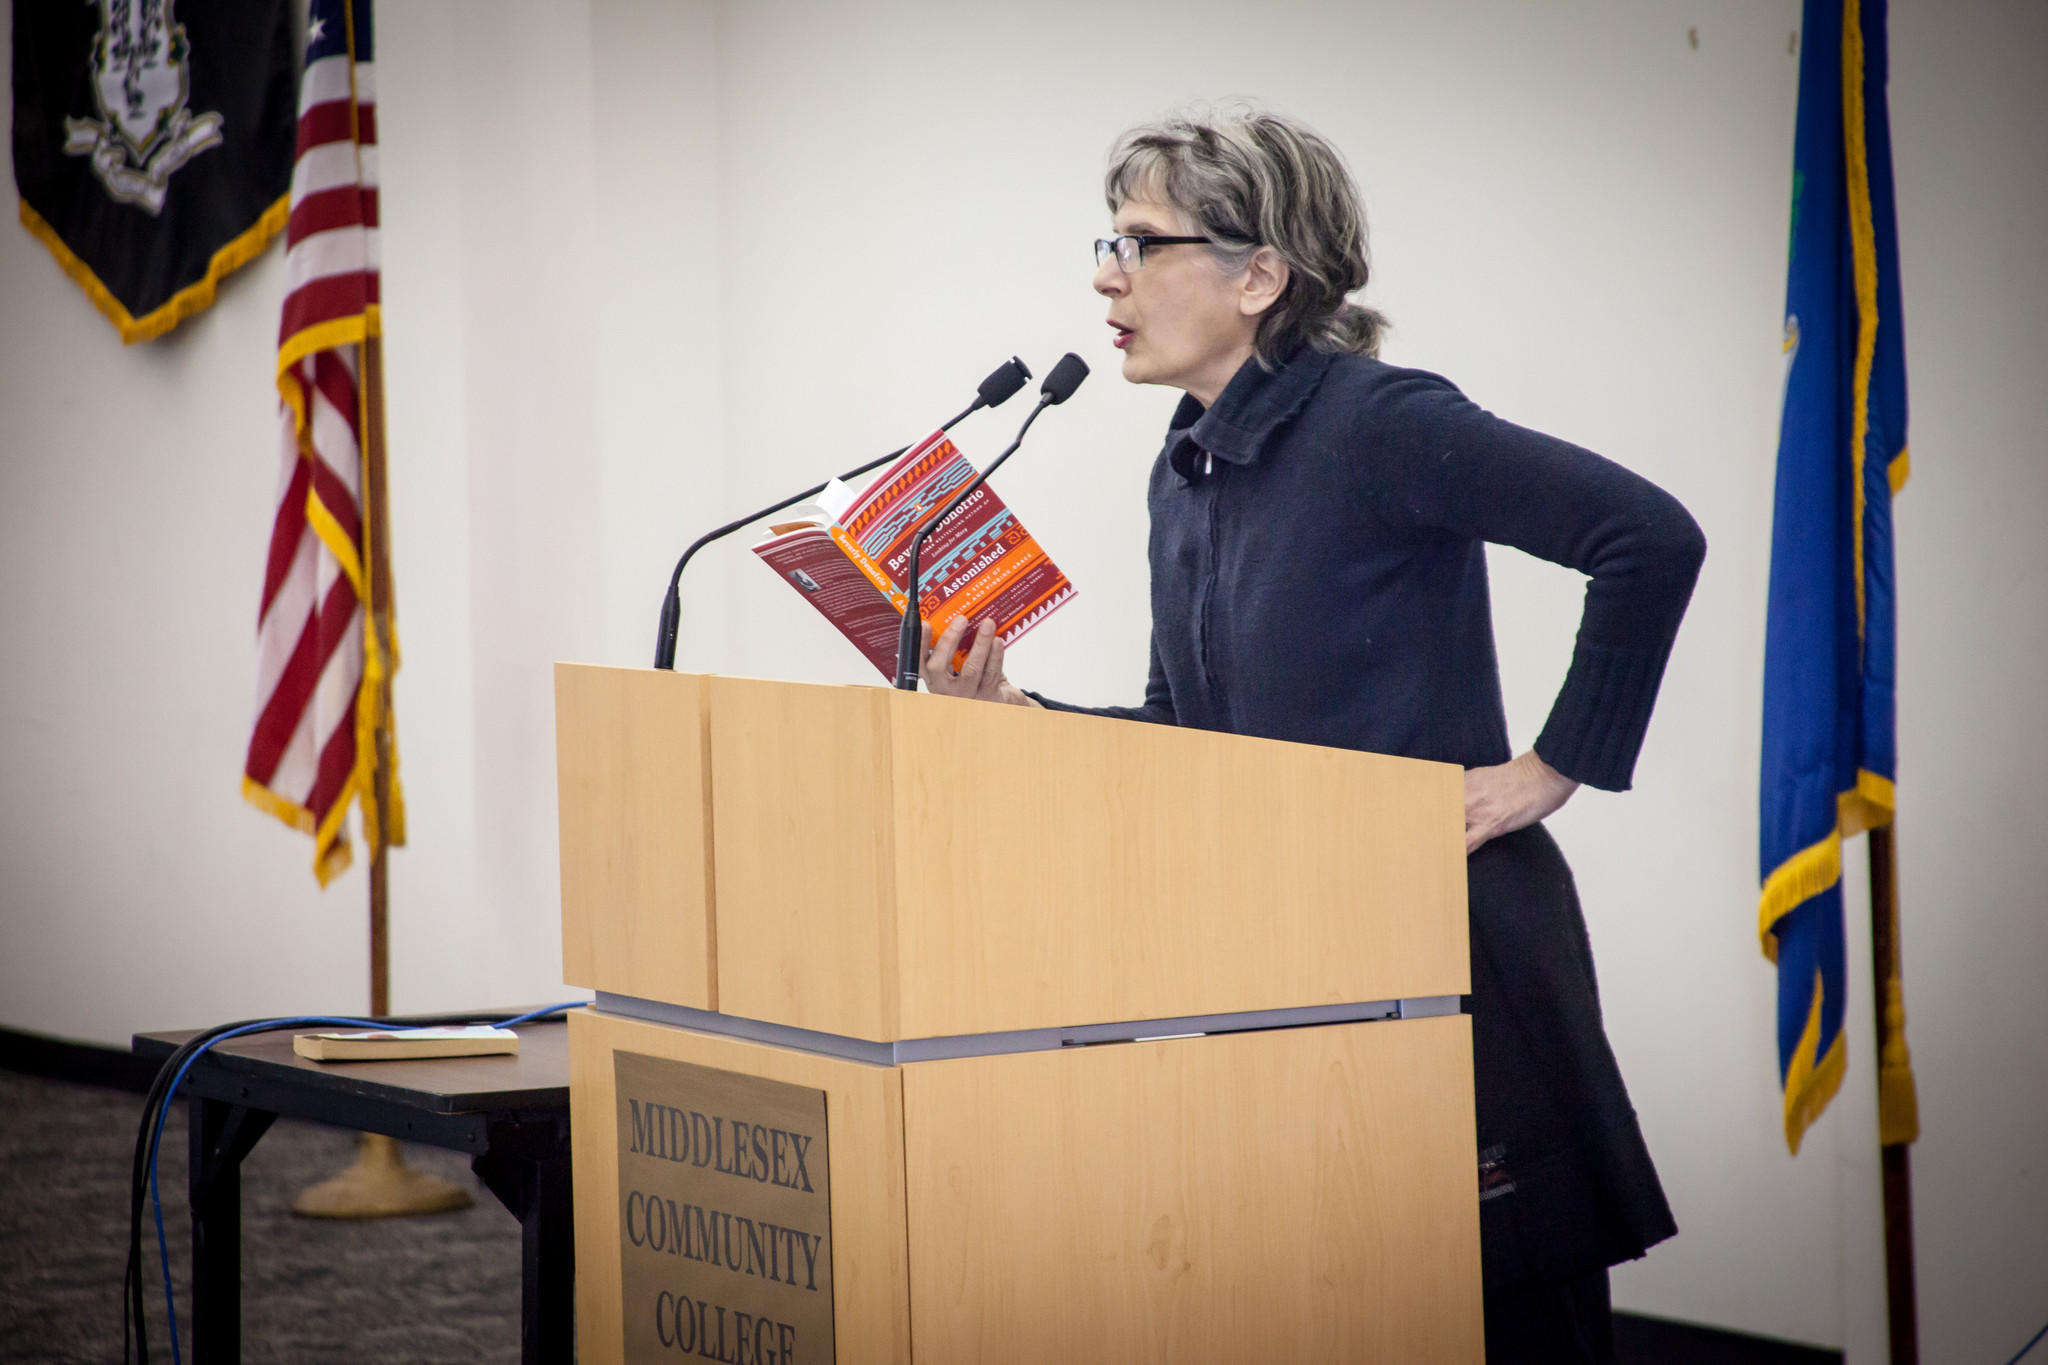 Beverly Donofrio at Middlesex Community College.